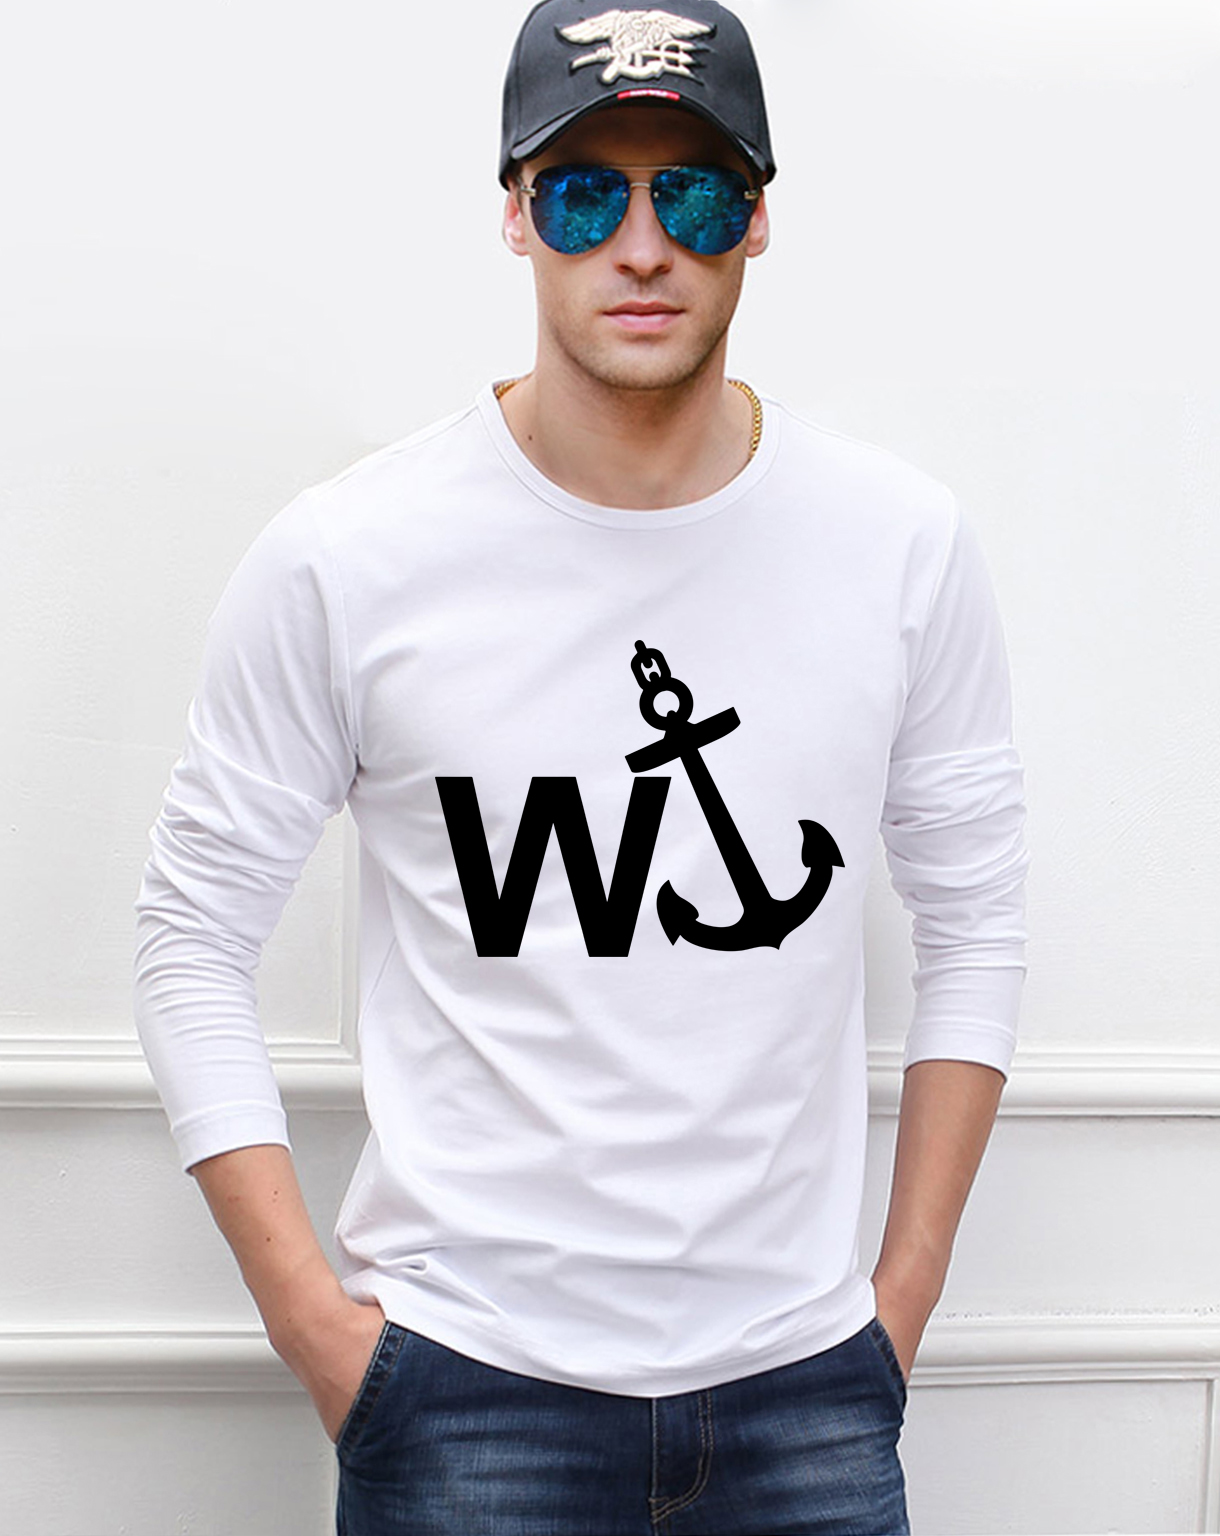 W'Anker Anchor Personalized Rude men t shirt 2019 spring 100% cotton hip hop men's long sleeve t-shirts crossfit funny top tees